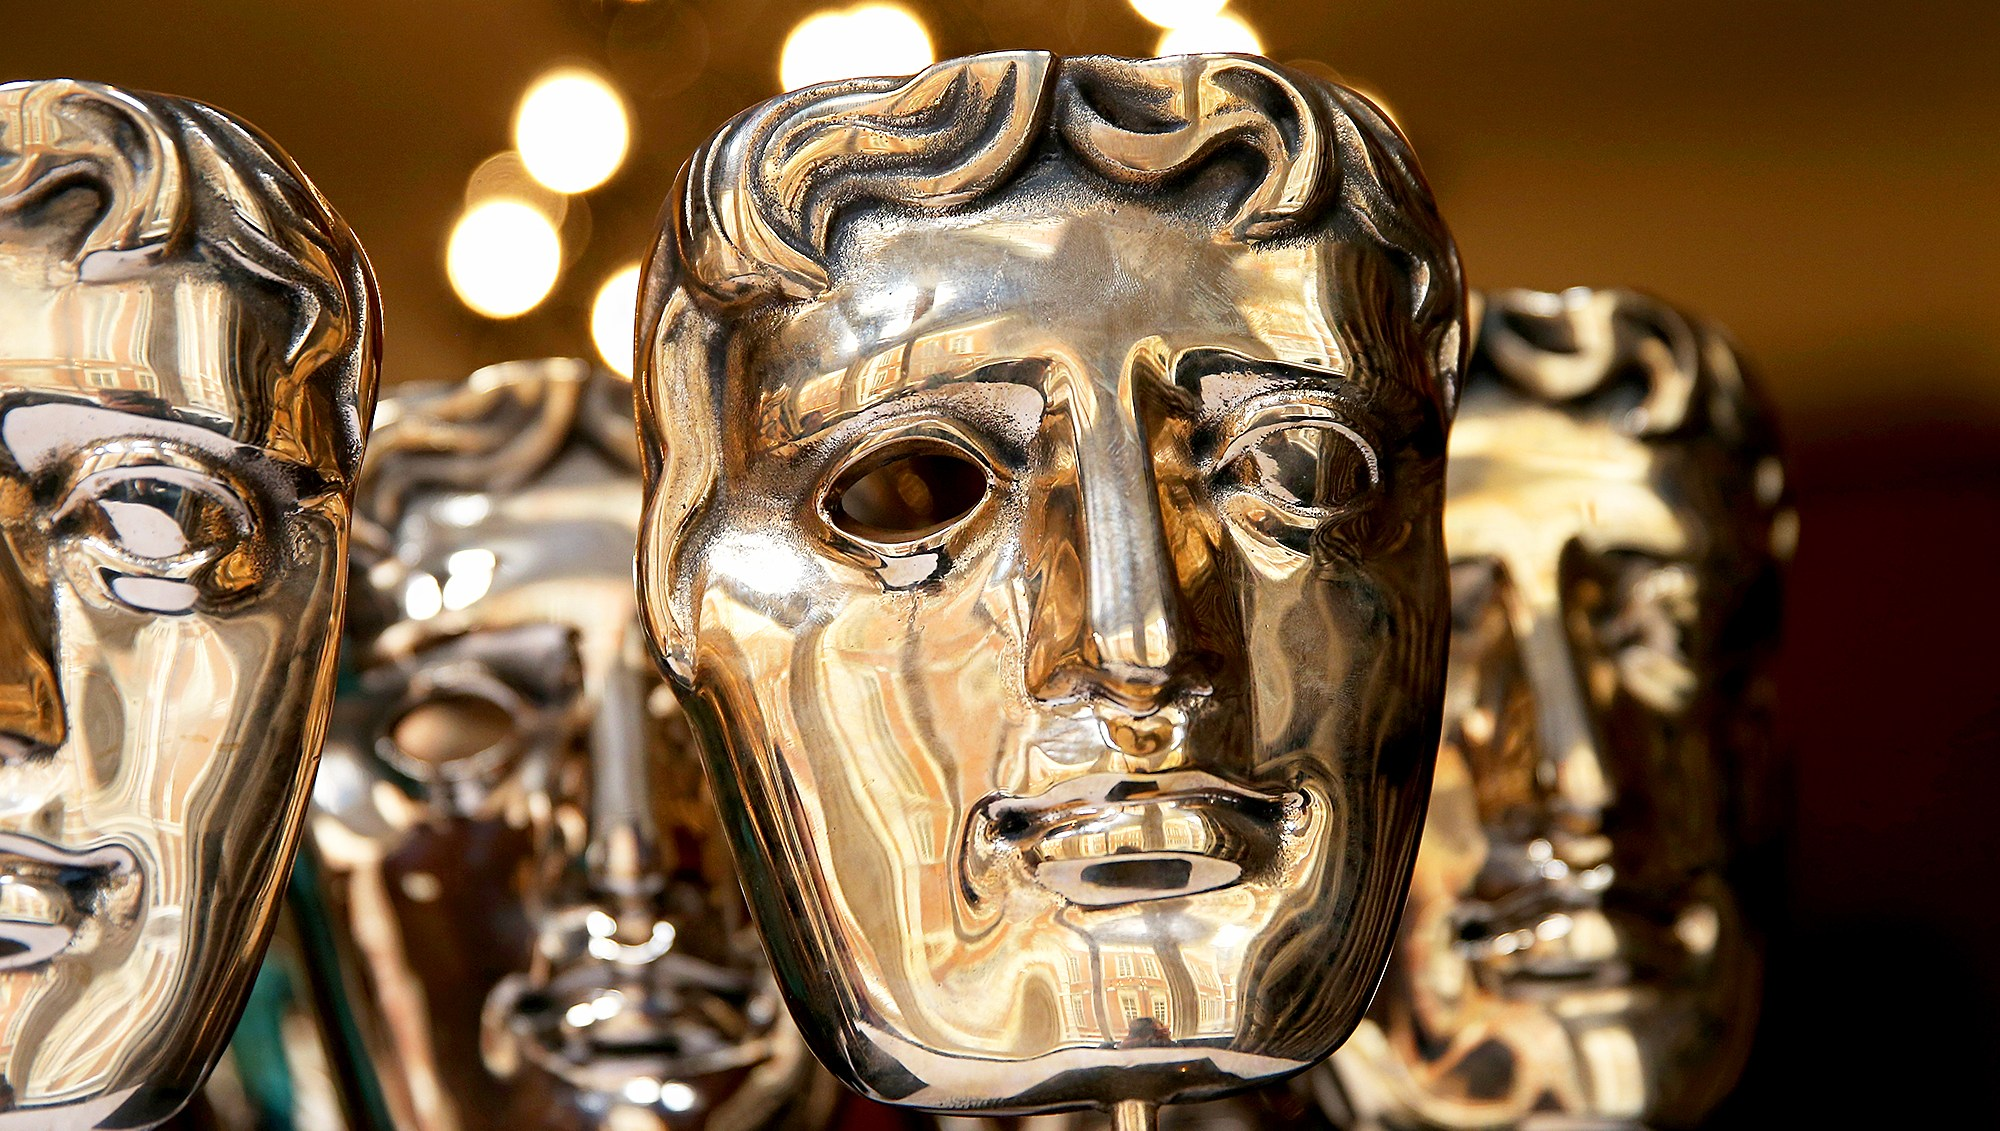 The iconic BAFTA mask awards sit ready to be polished at the Savoy Hotel ahead of the British Academy Film Awards in London, England.